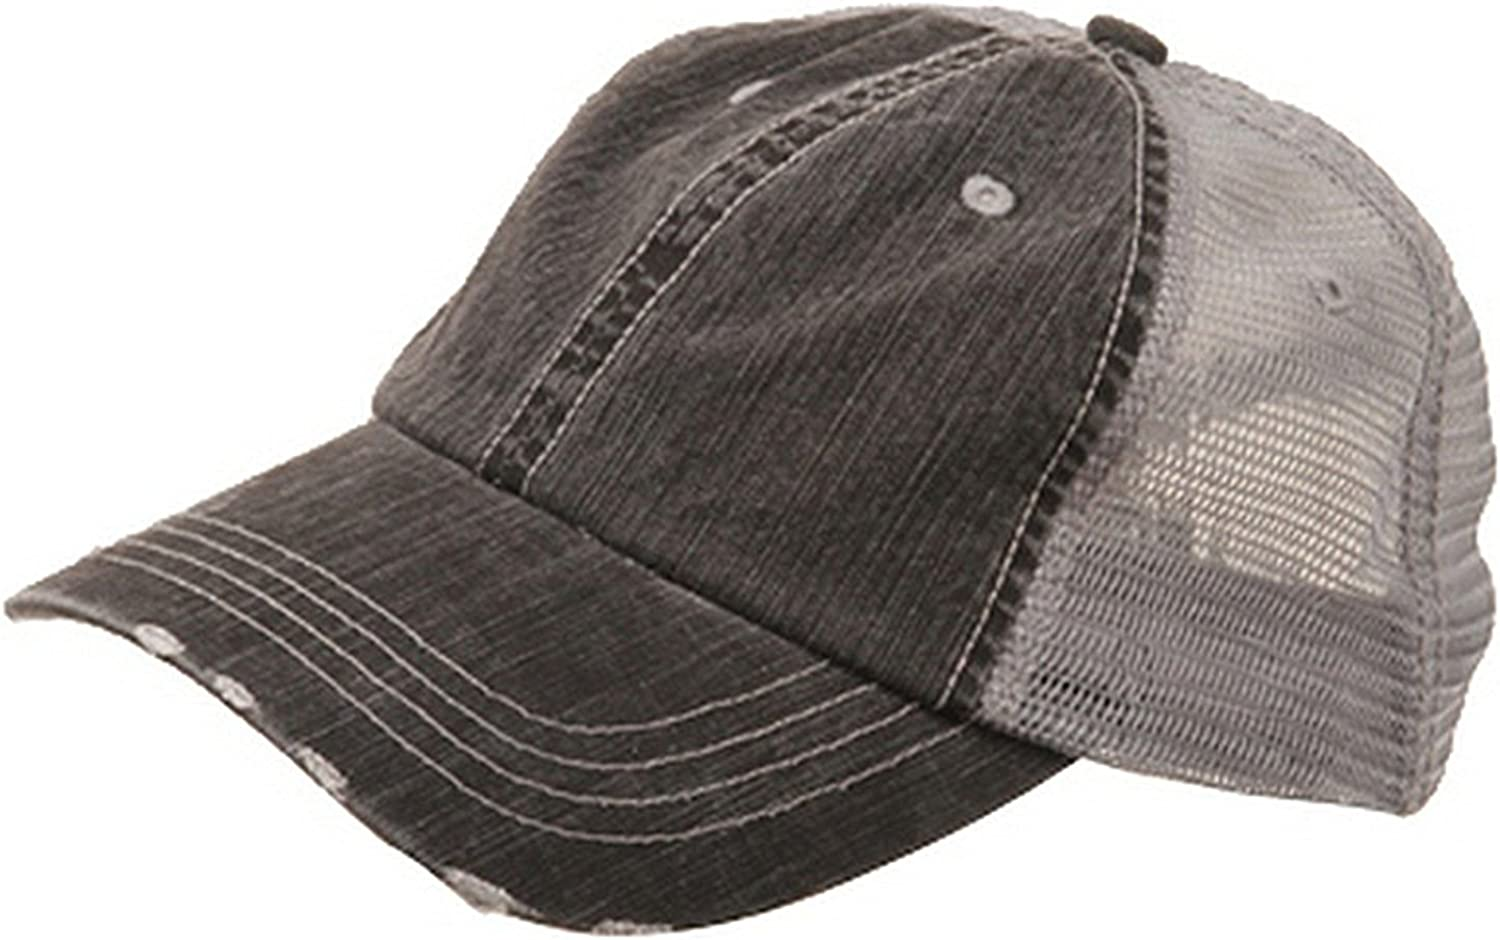 MG Low Profile Special Cotton Mesh Cap